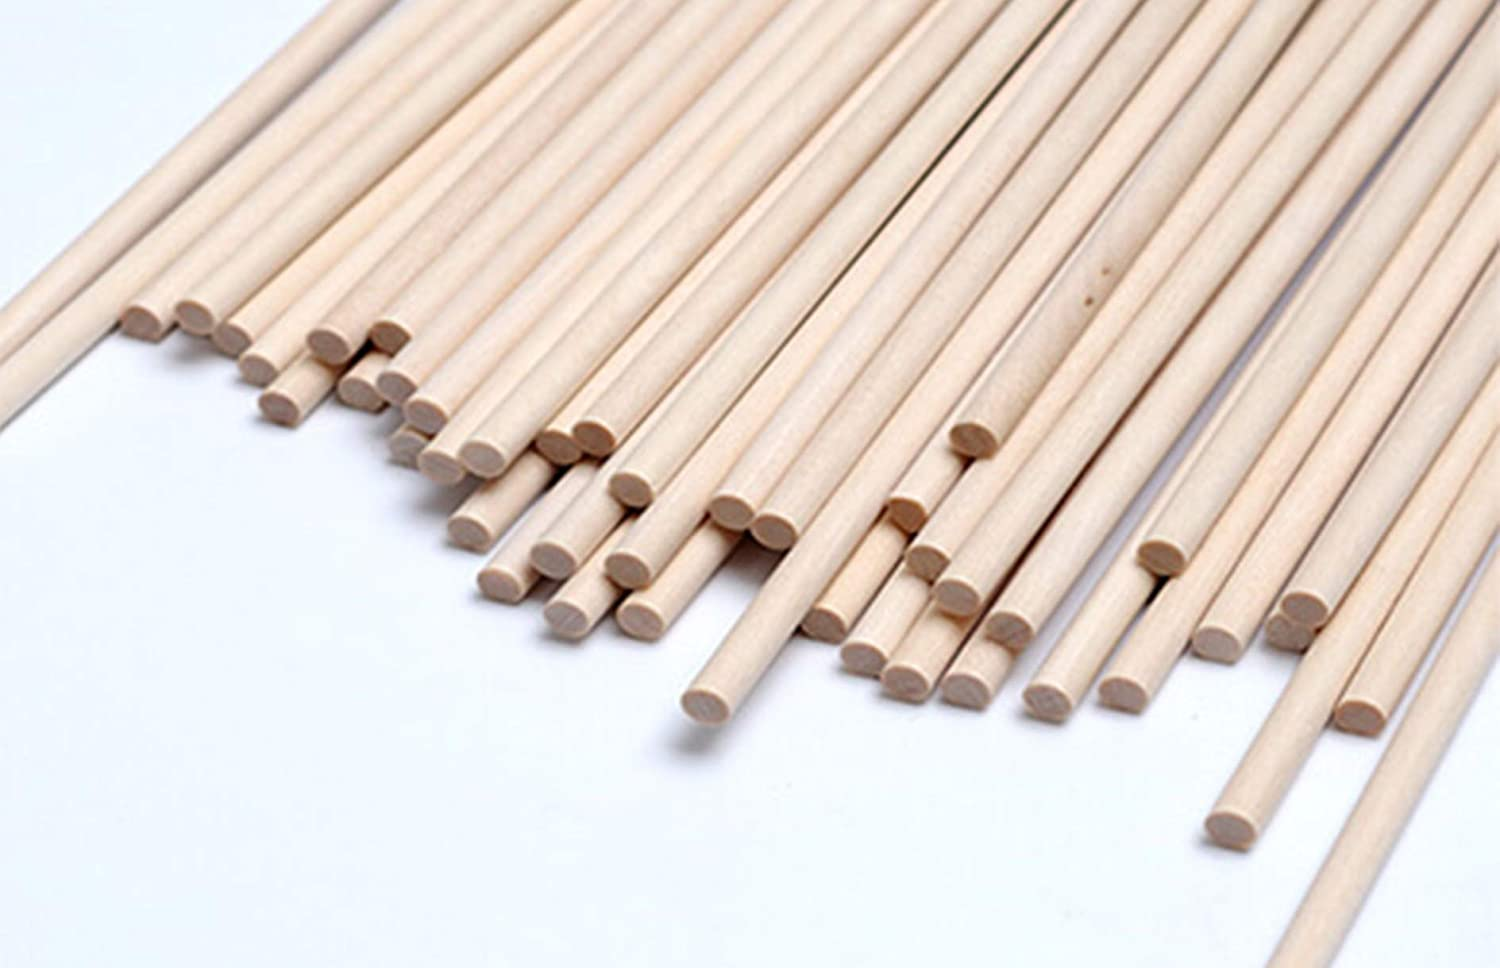 Round Bamboo Craft Sticks   Skewers   Dowels   Great for Arts & Crafts, BBQ, Candy   Safe for Kids   Party Item - Apple, Marshmallow, Hot Dog, Shish Kabob, and More   50 Pieces   5mm (16inch)